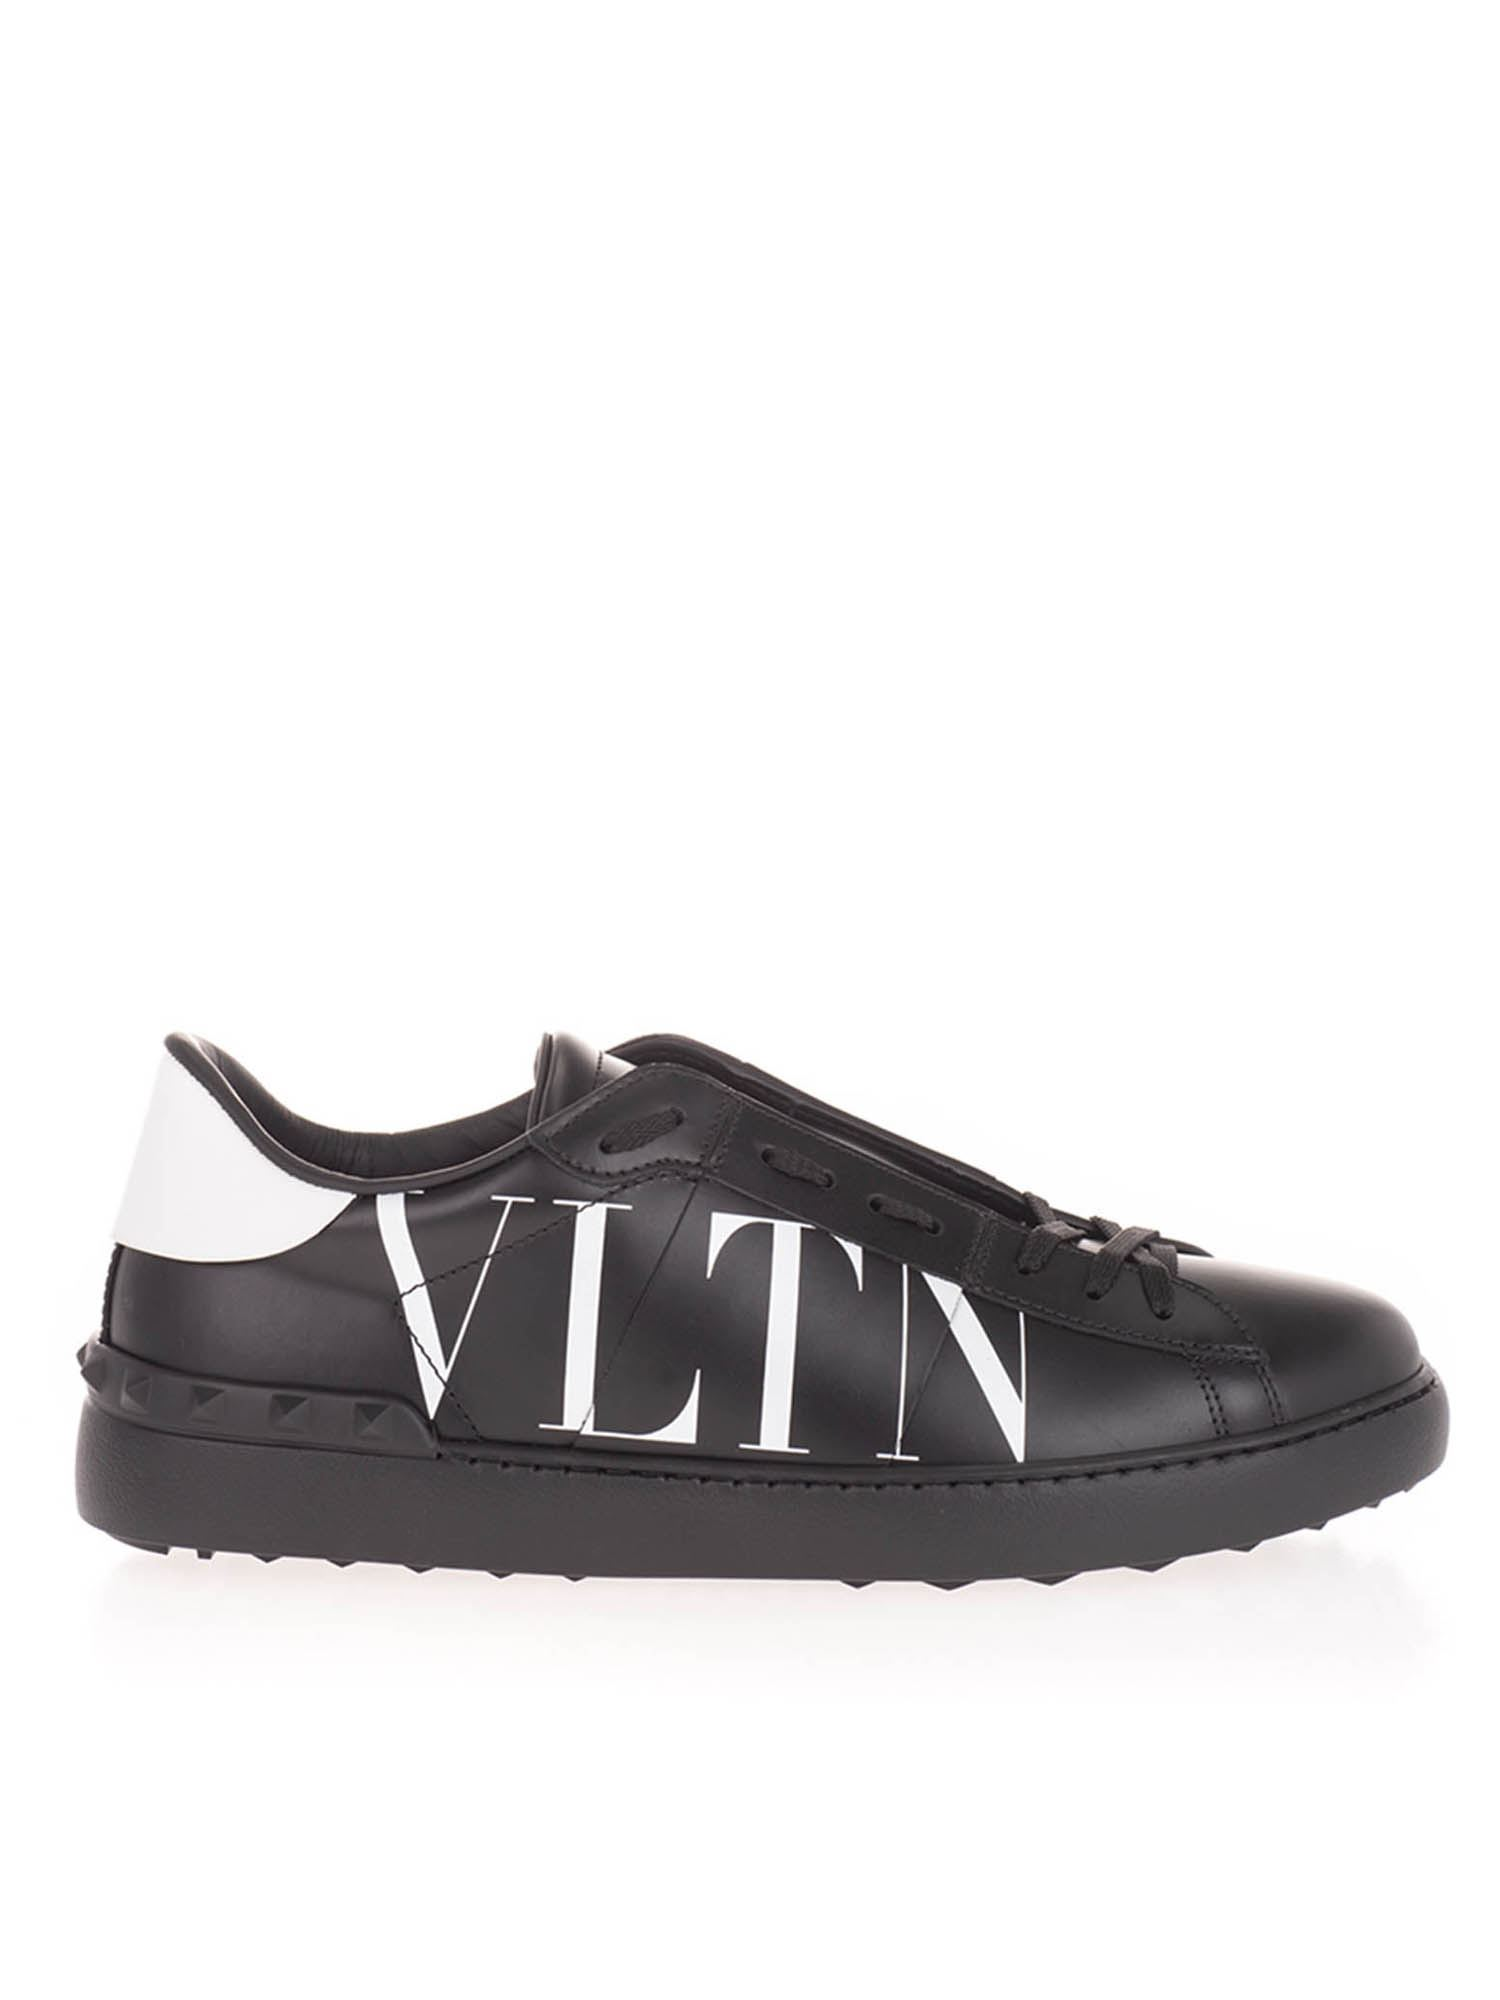 Valentino OPEN SNEAKERS IN BLACK